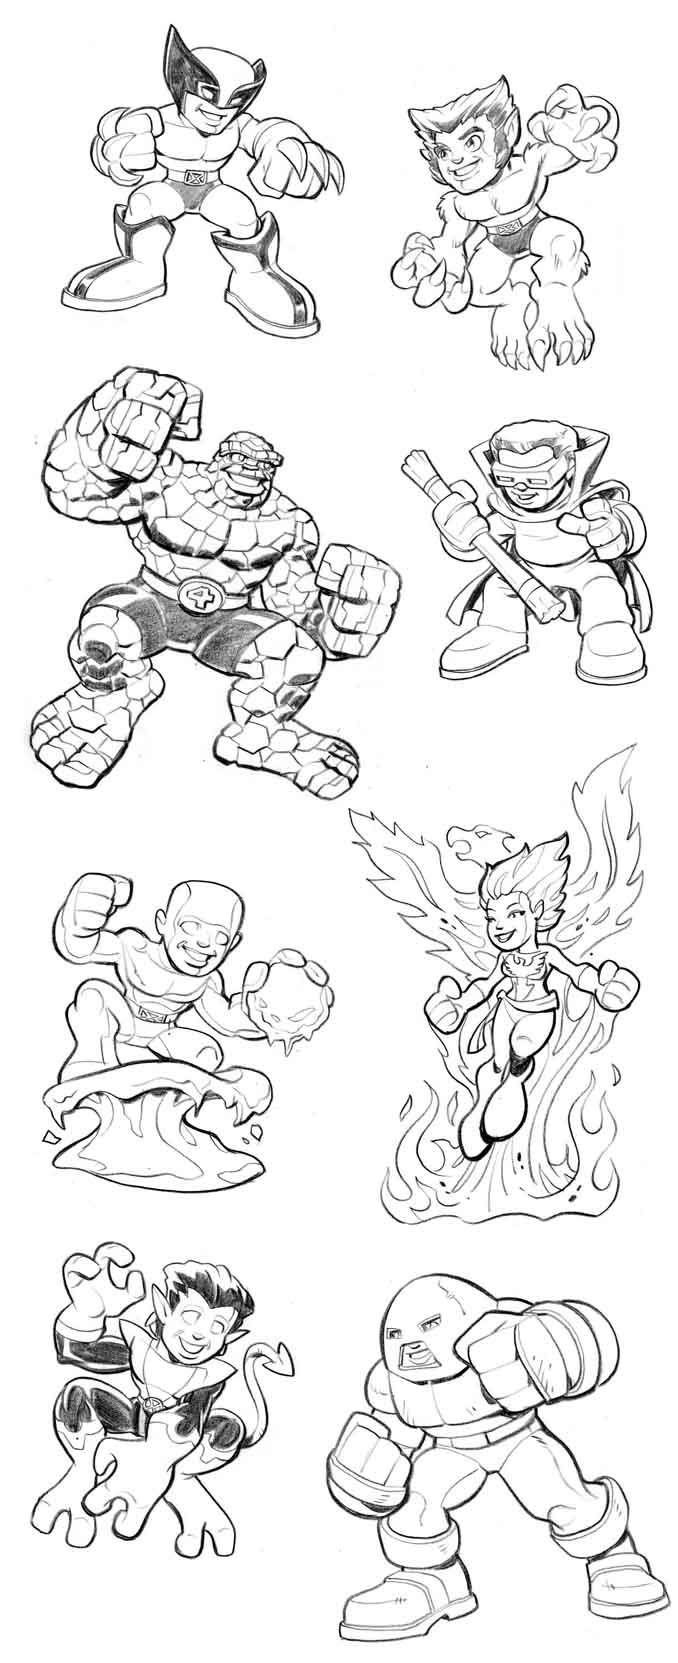 Pin by spetri.marvel.Comics on LineArt: Super Hero Squad